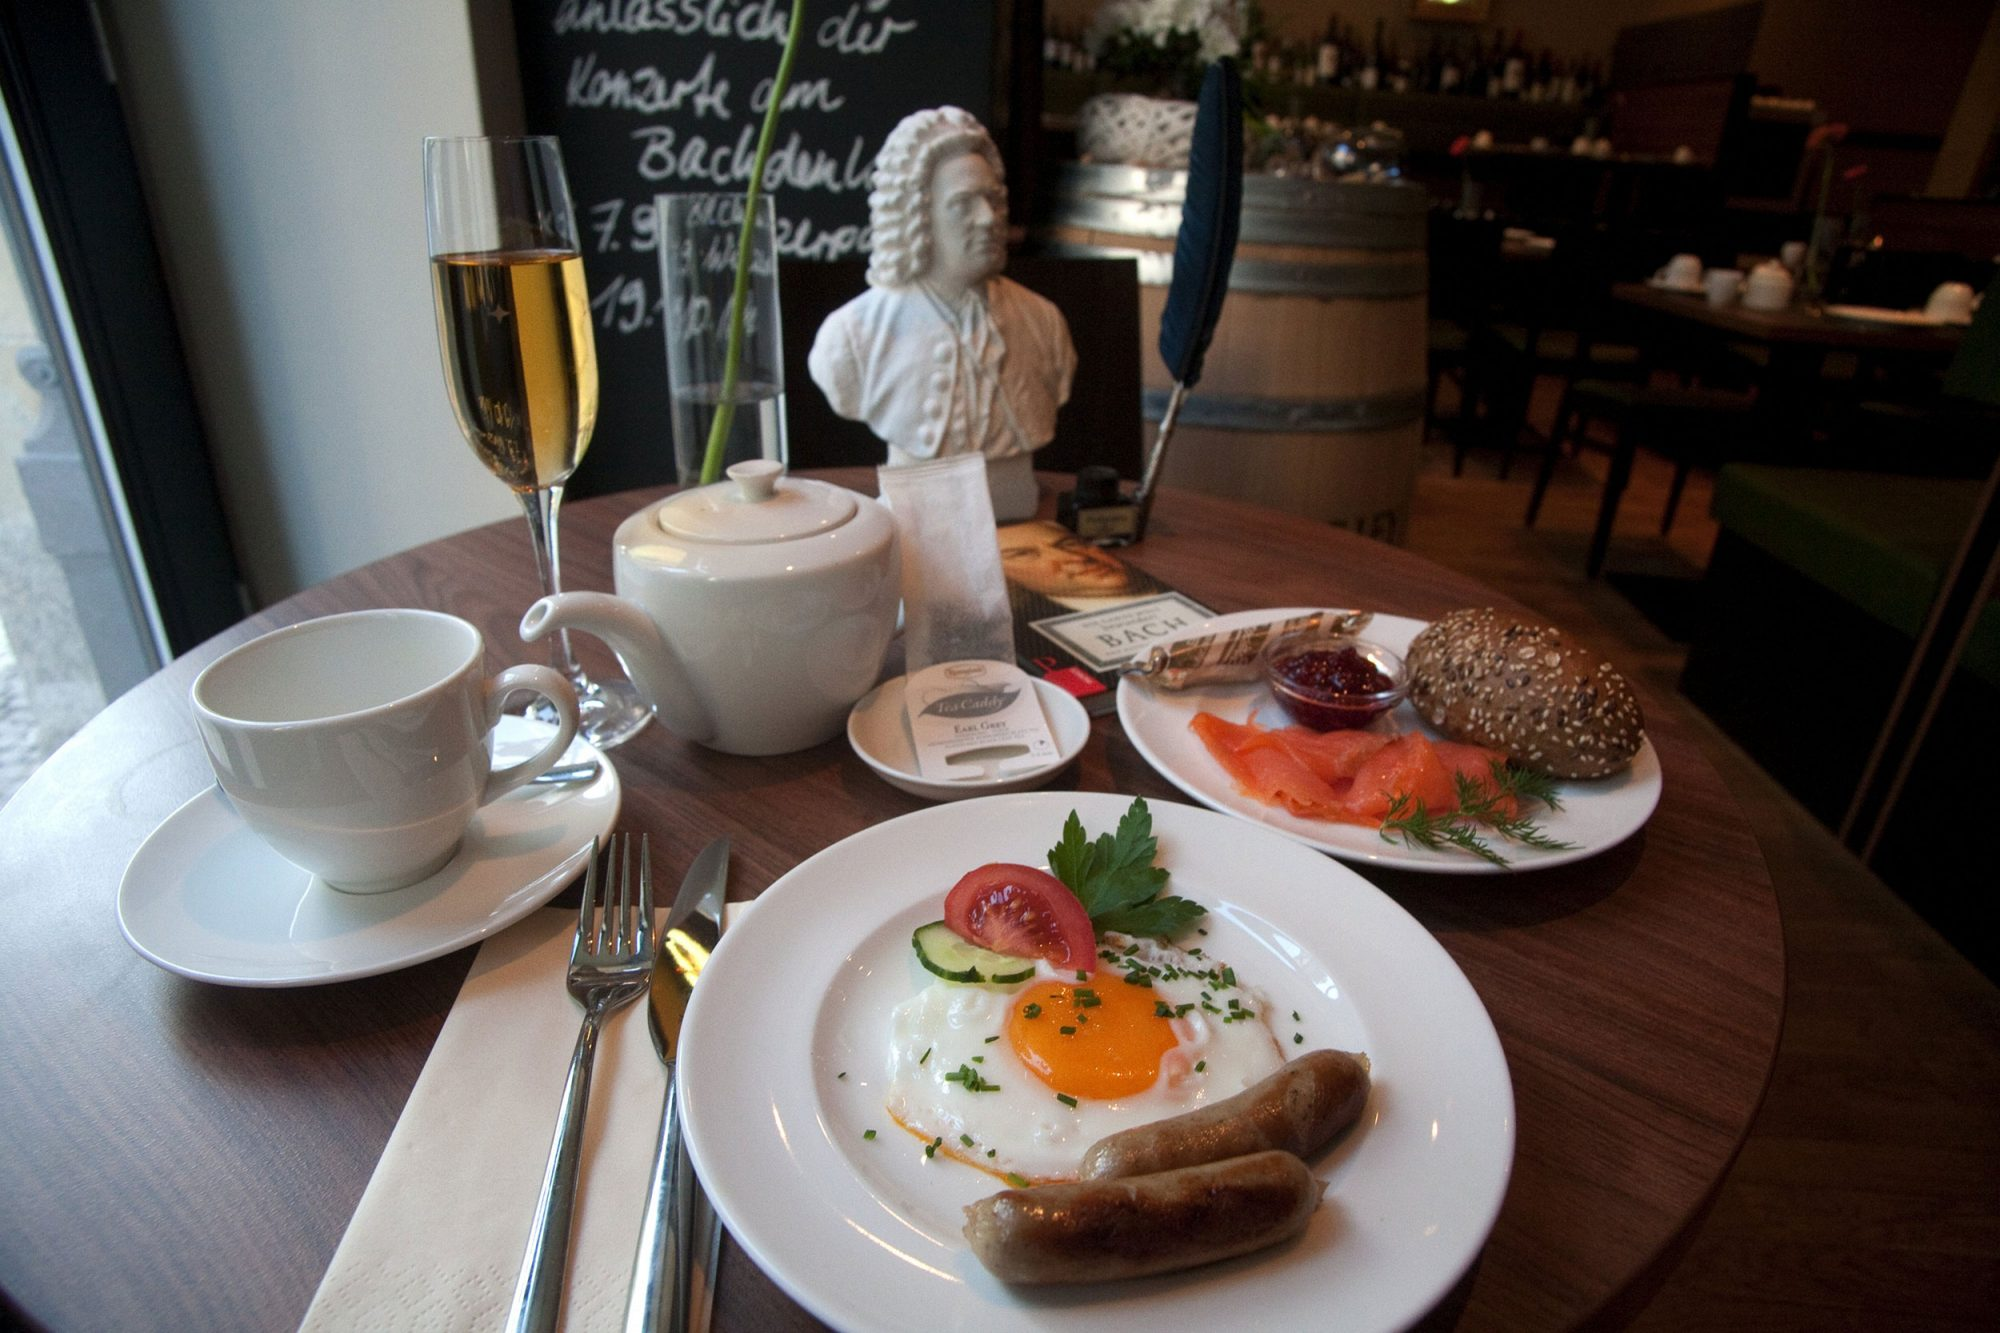 EC: What Germans Know About Breakfast That Americans Don't